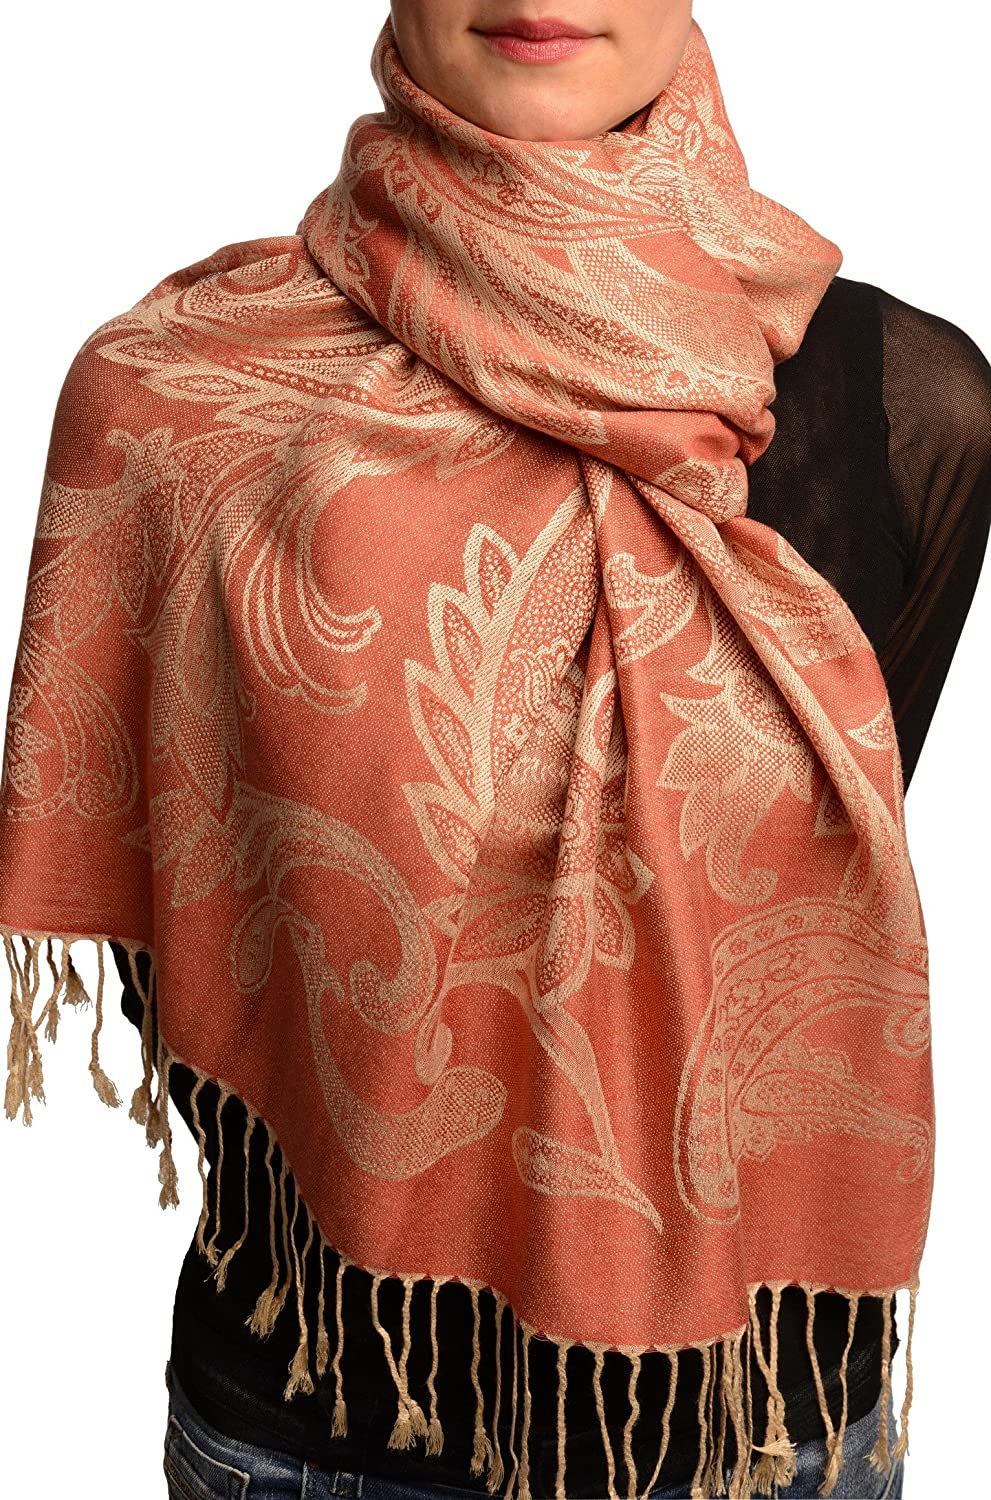 Large Paisleys On Coral Pink Pashmina Feel With Tassels - Scarf